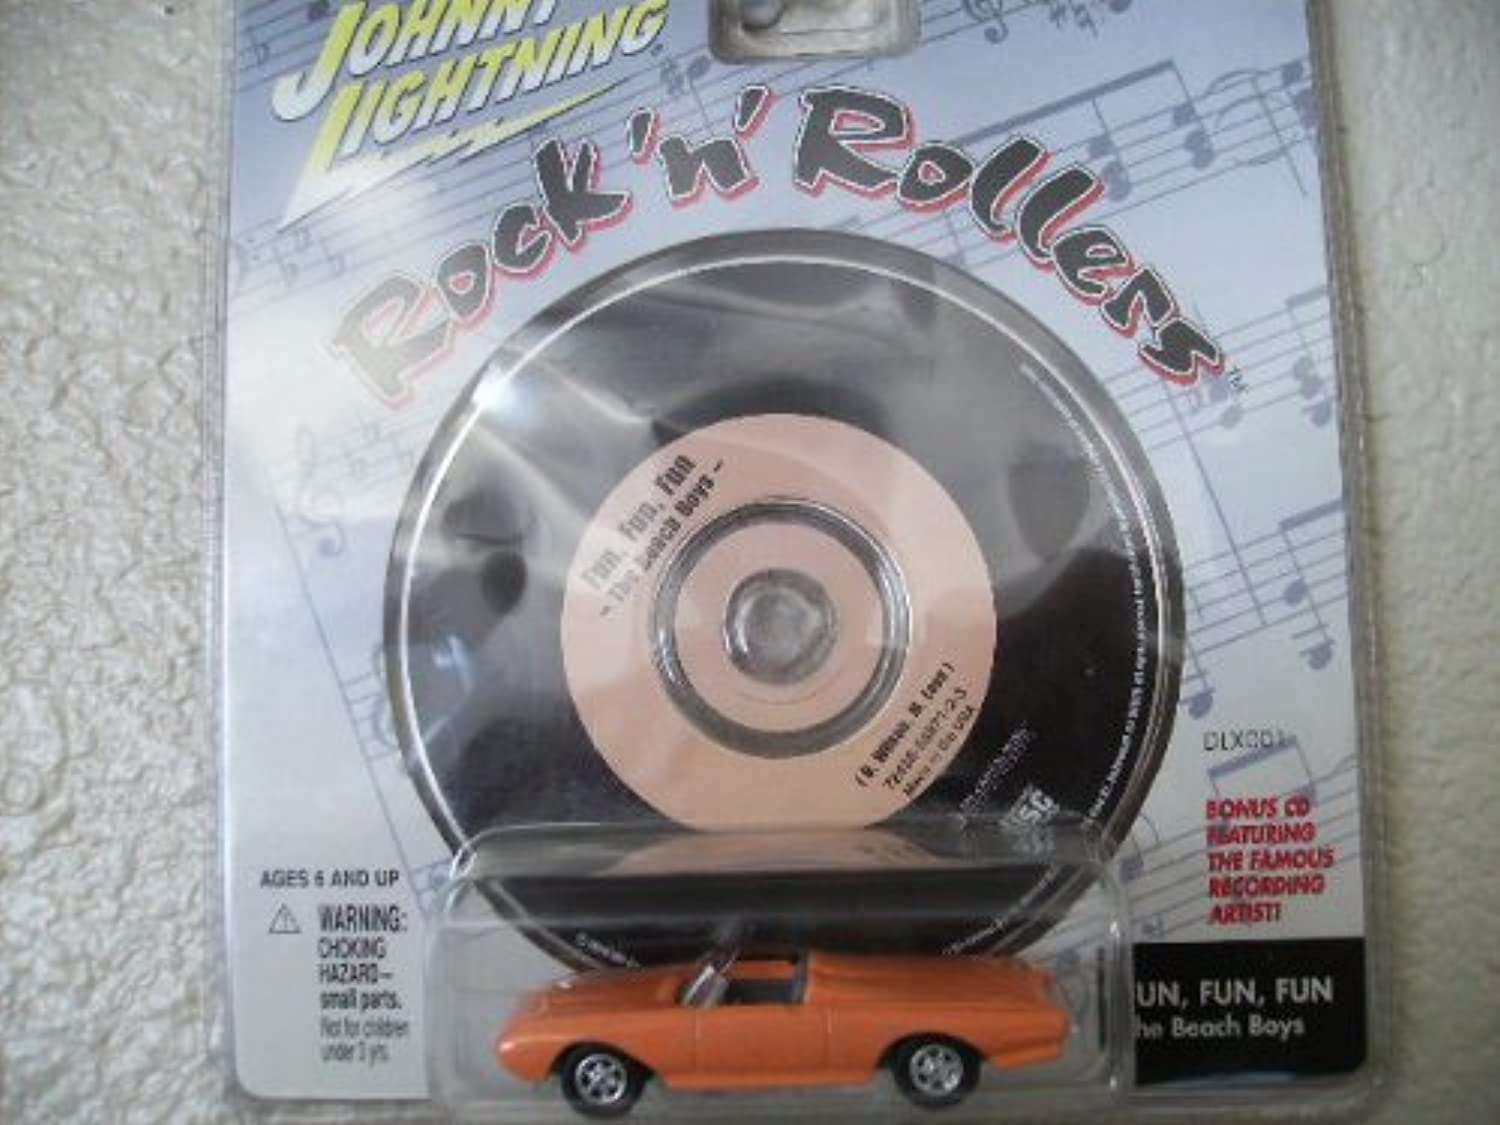 Johnny Lightning Rock N Roller Bad Tbird with Music Cd Fun Fun Fun By the Beach Boys by Playing Mantis